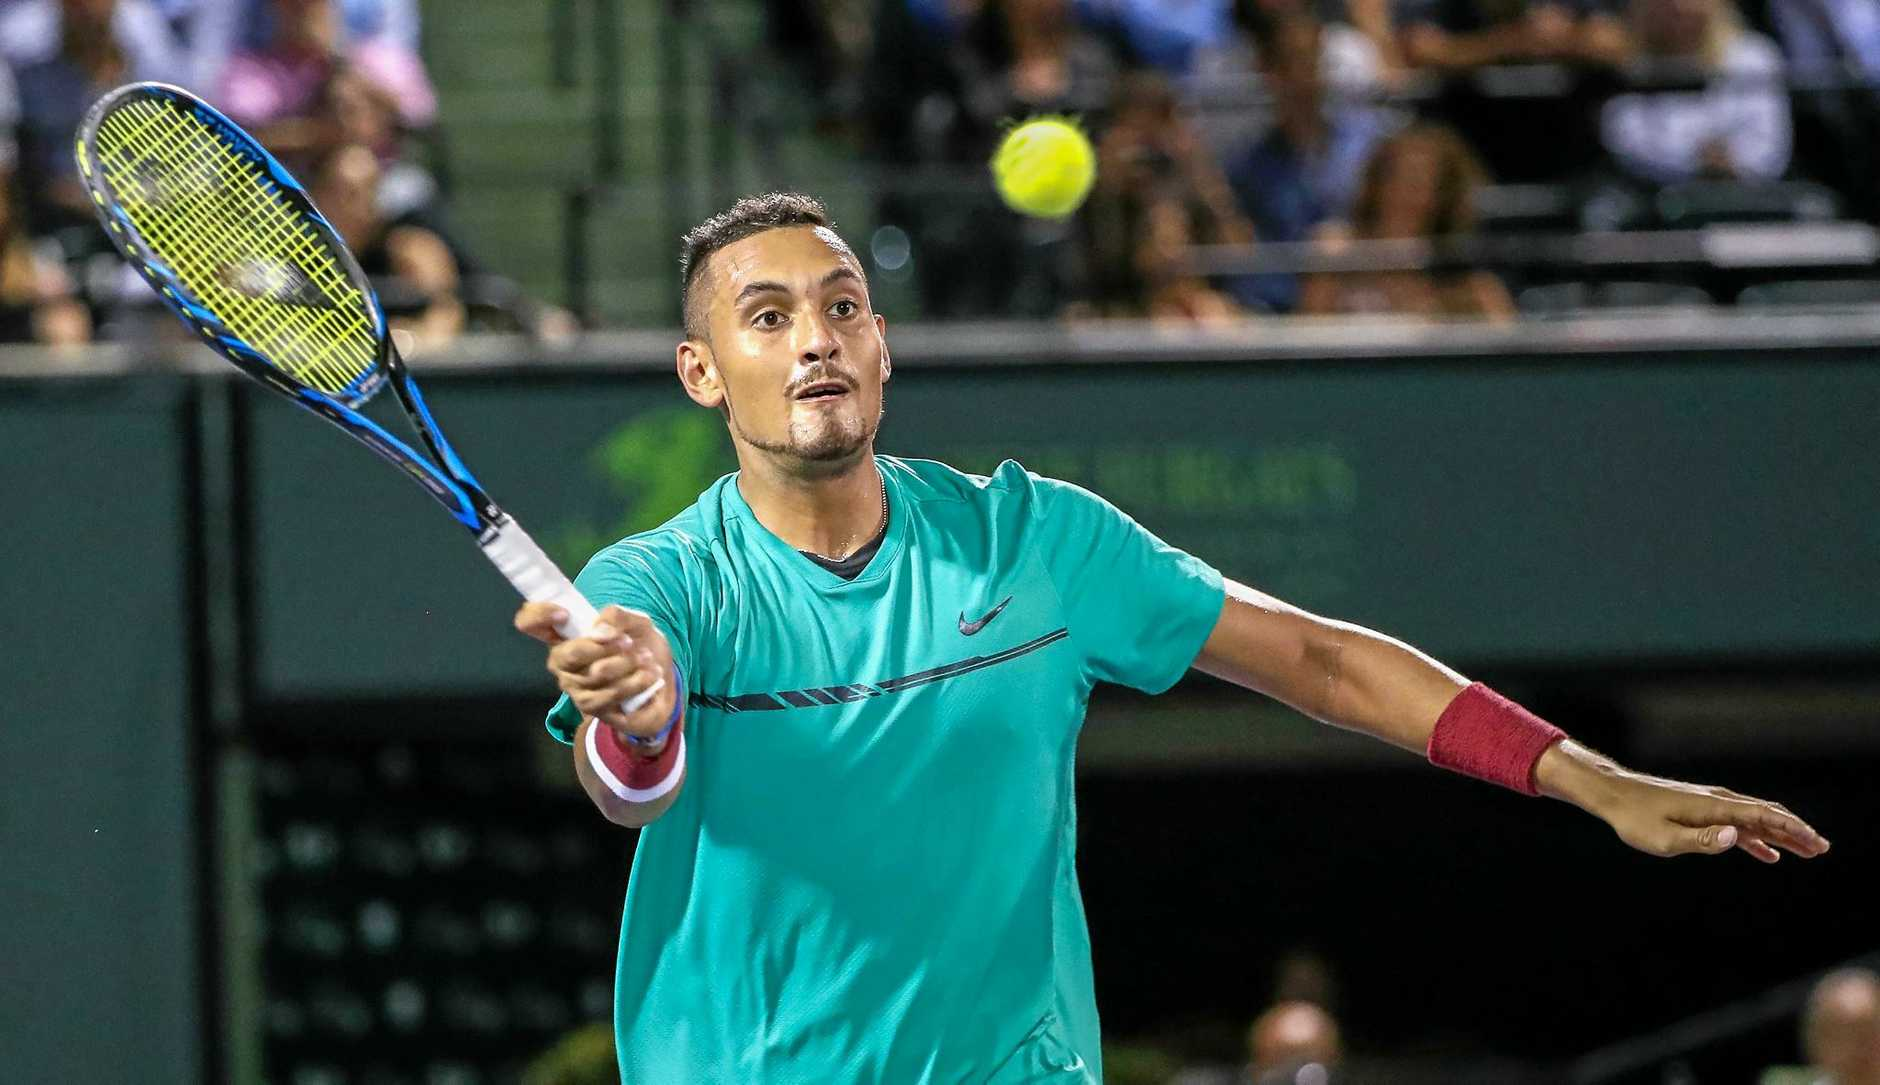 Nick Kyrgios of Australia in action against Roger Federer of Switzerland at the Miami Open.